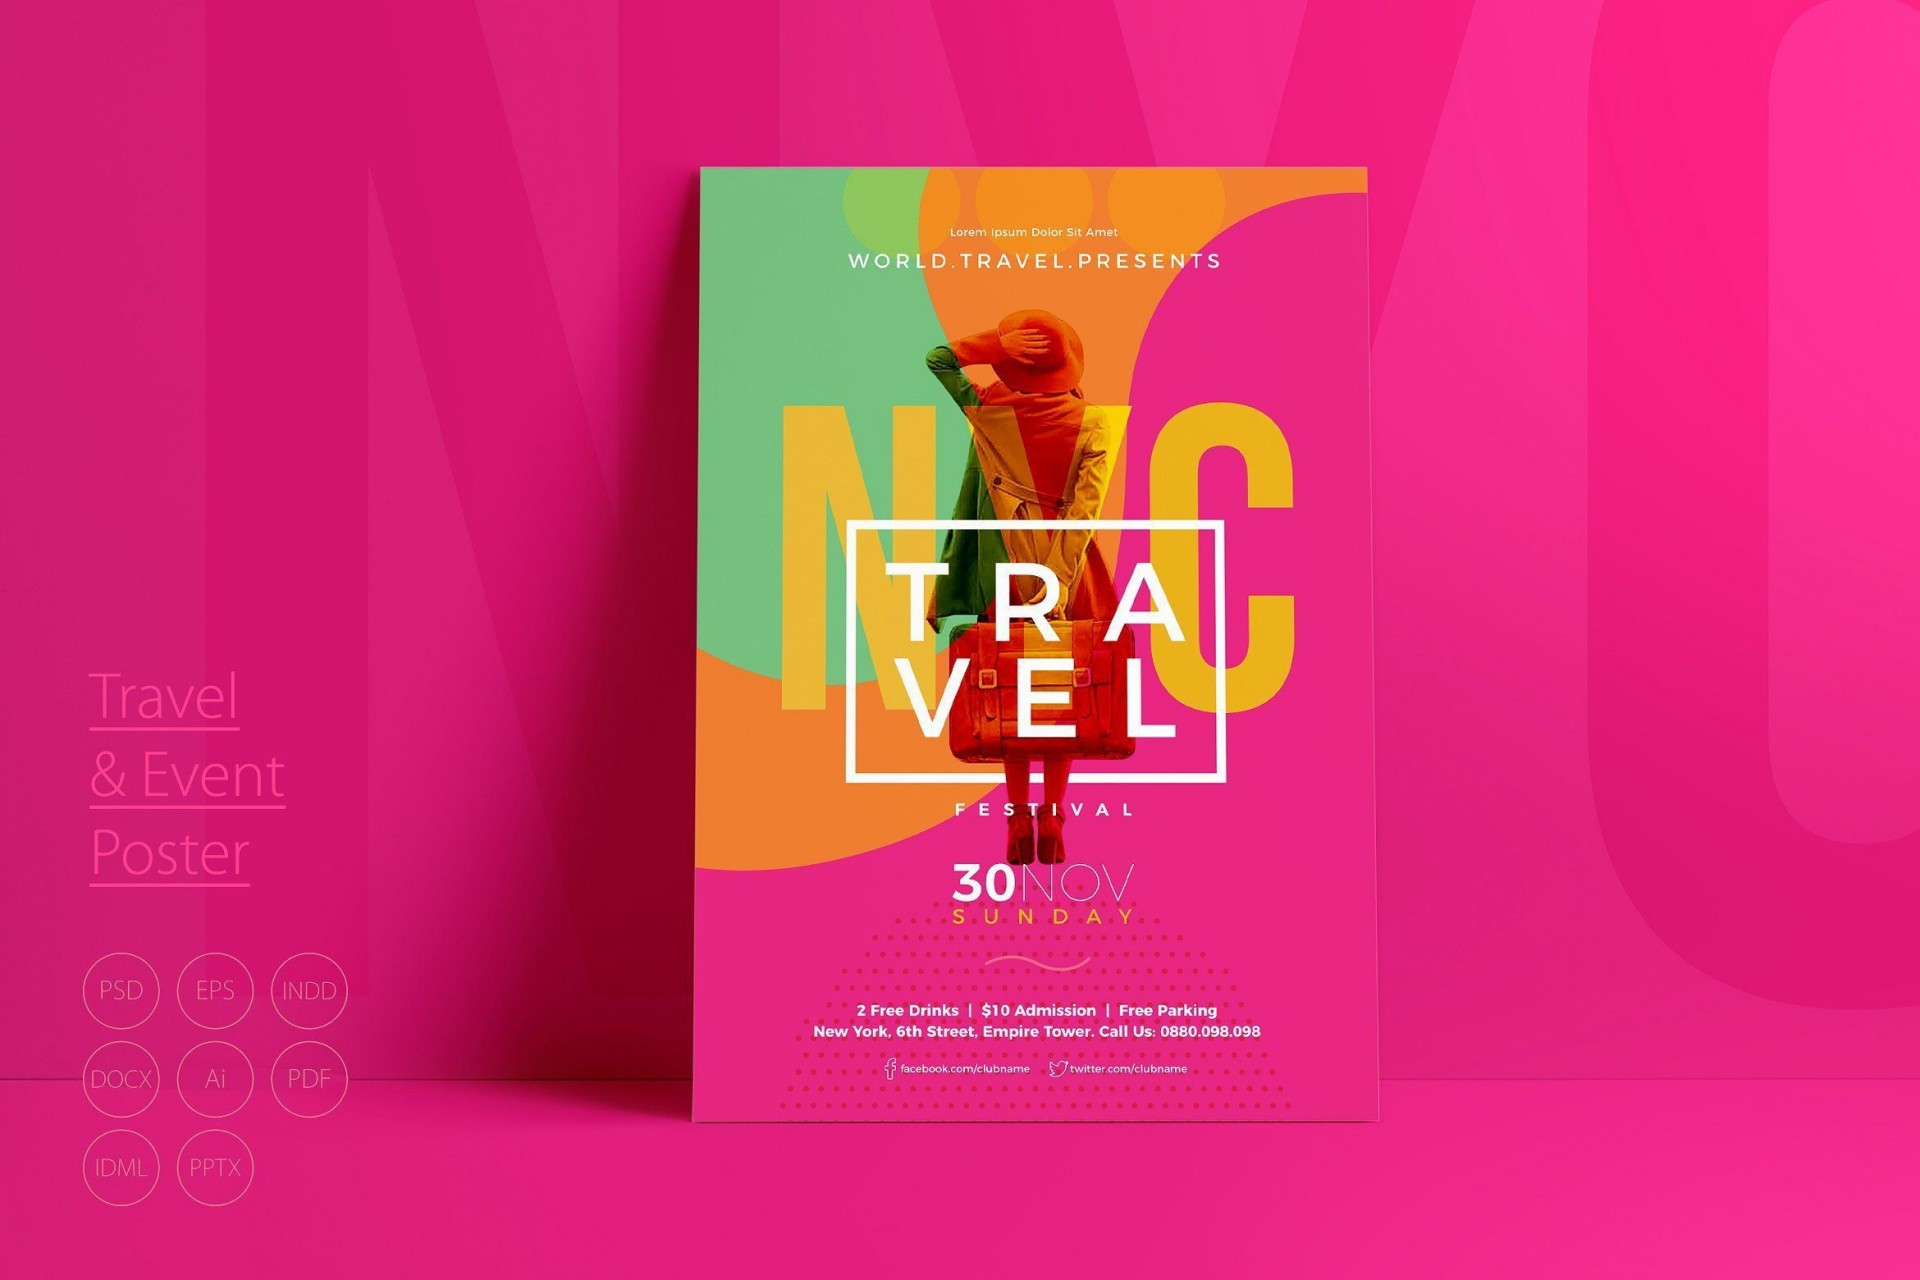 000 Frightening Free Event Flyer Template Word High Resolution  Microsoft1920